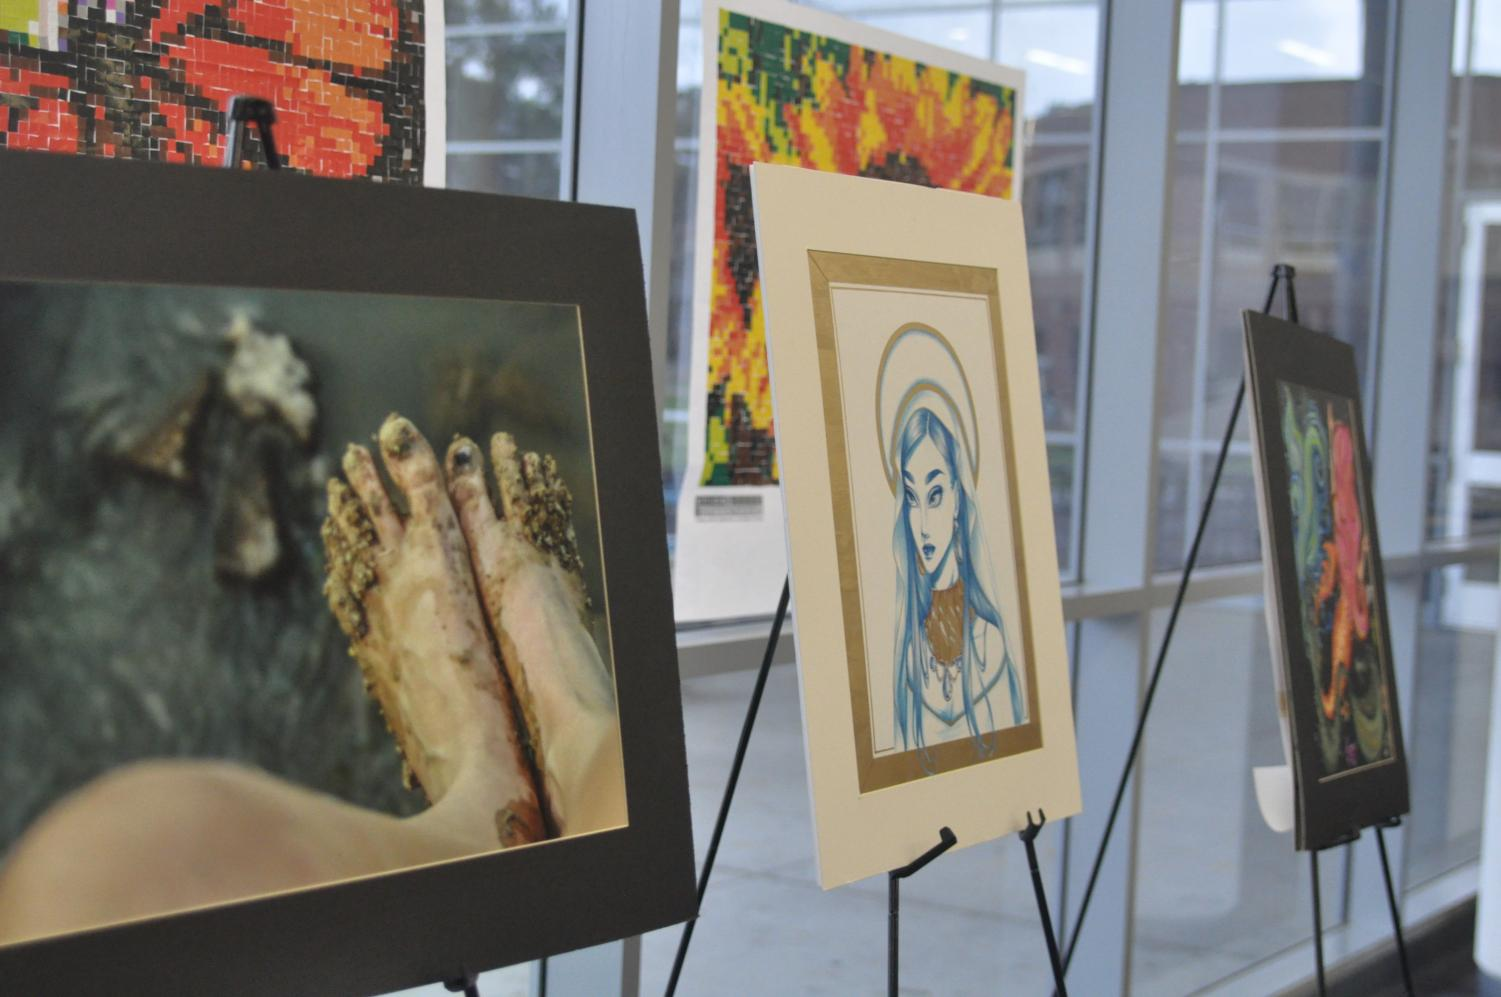 VASE was held Feb. 17, and artworks were later put on display in the Klein Collins library.